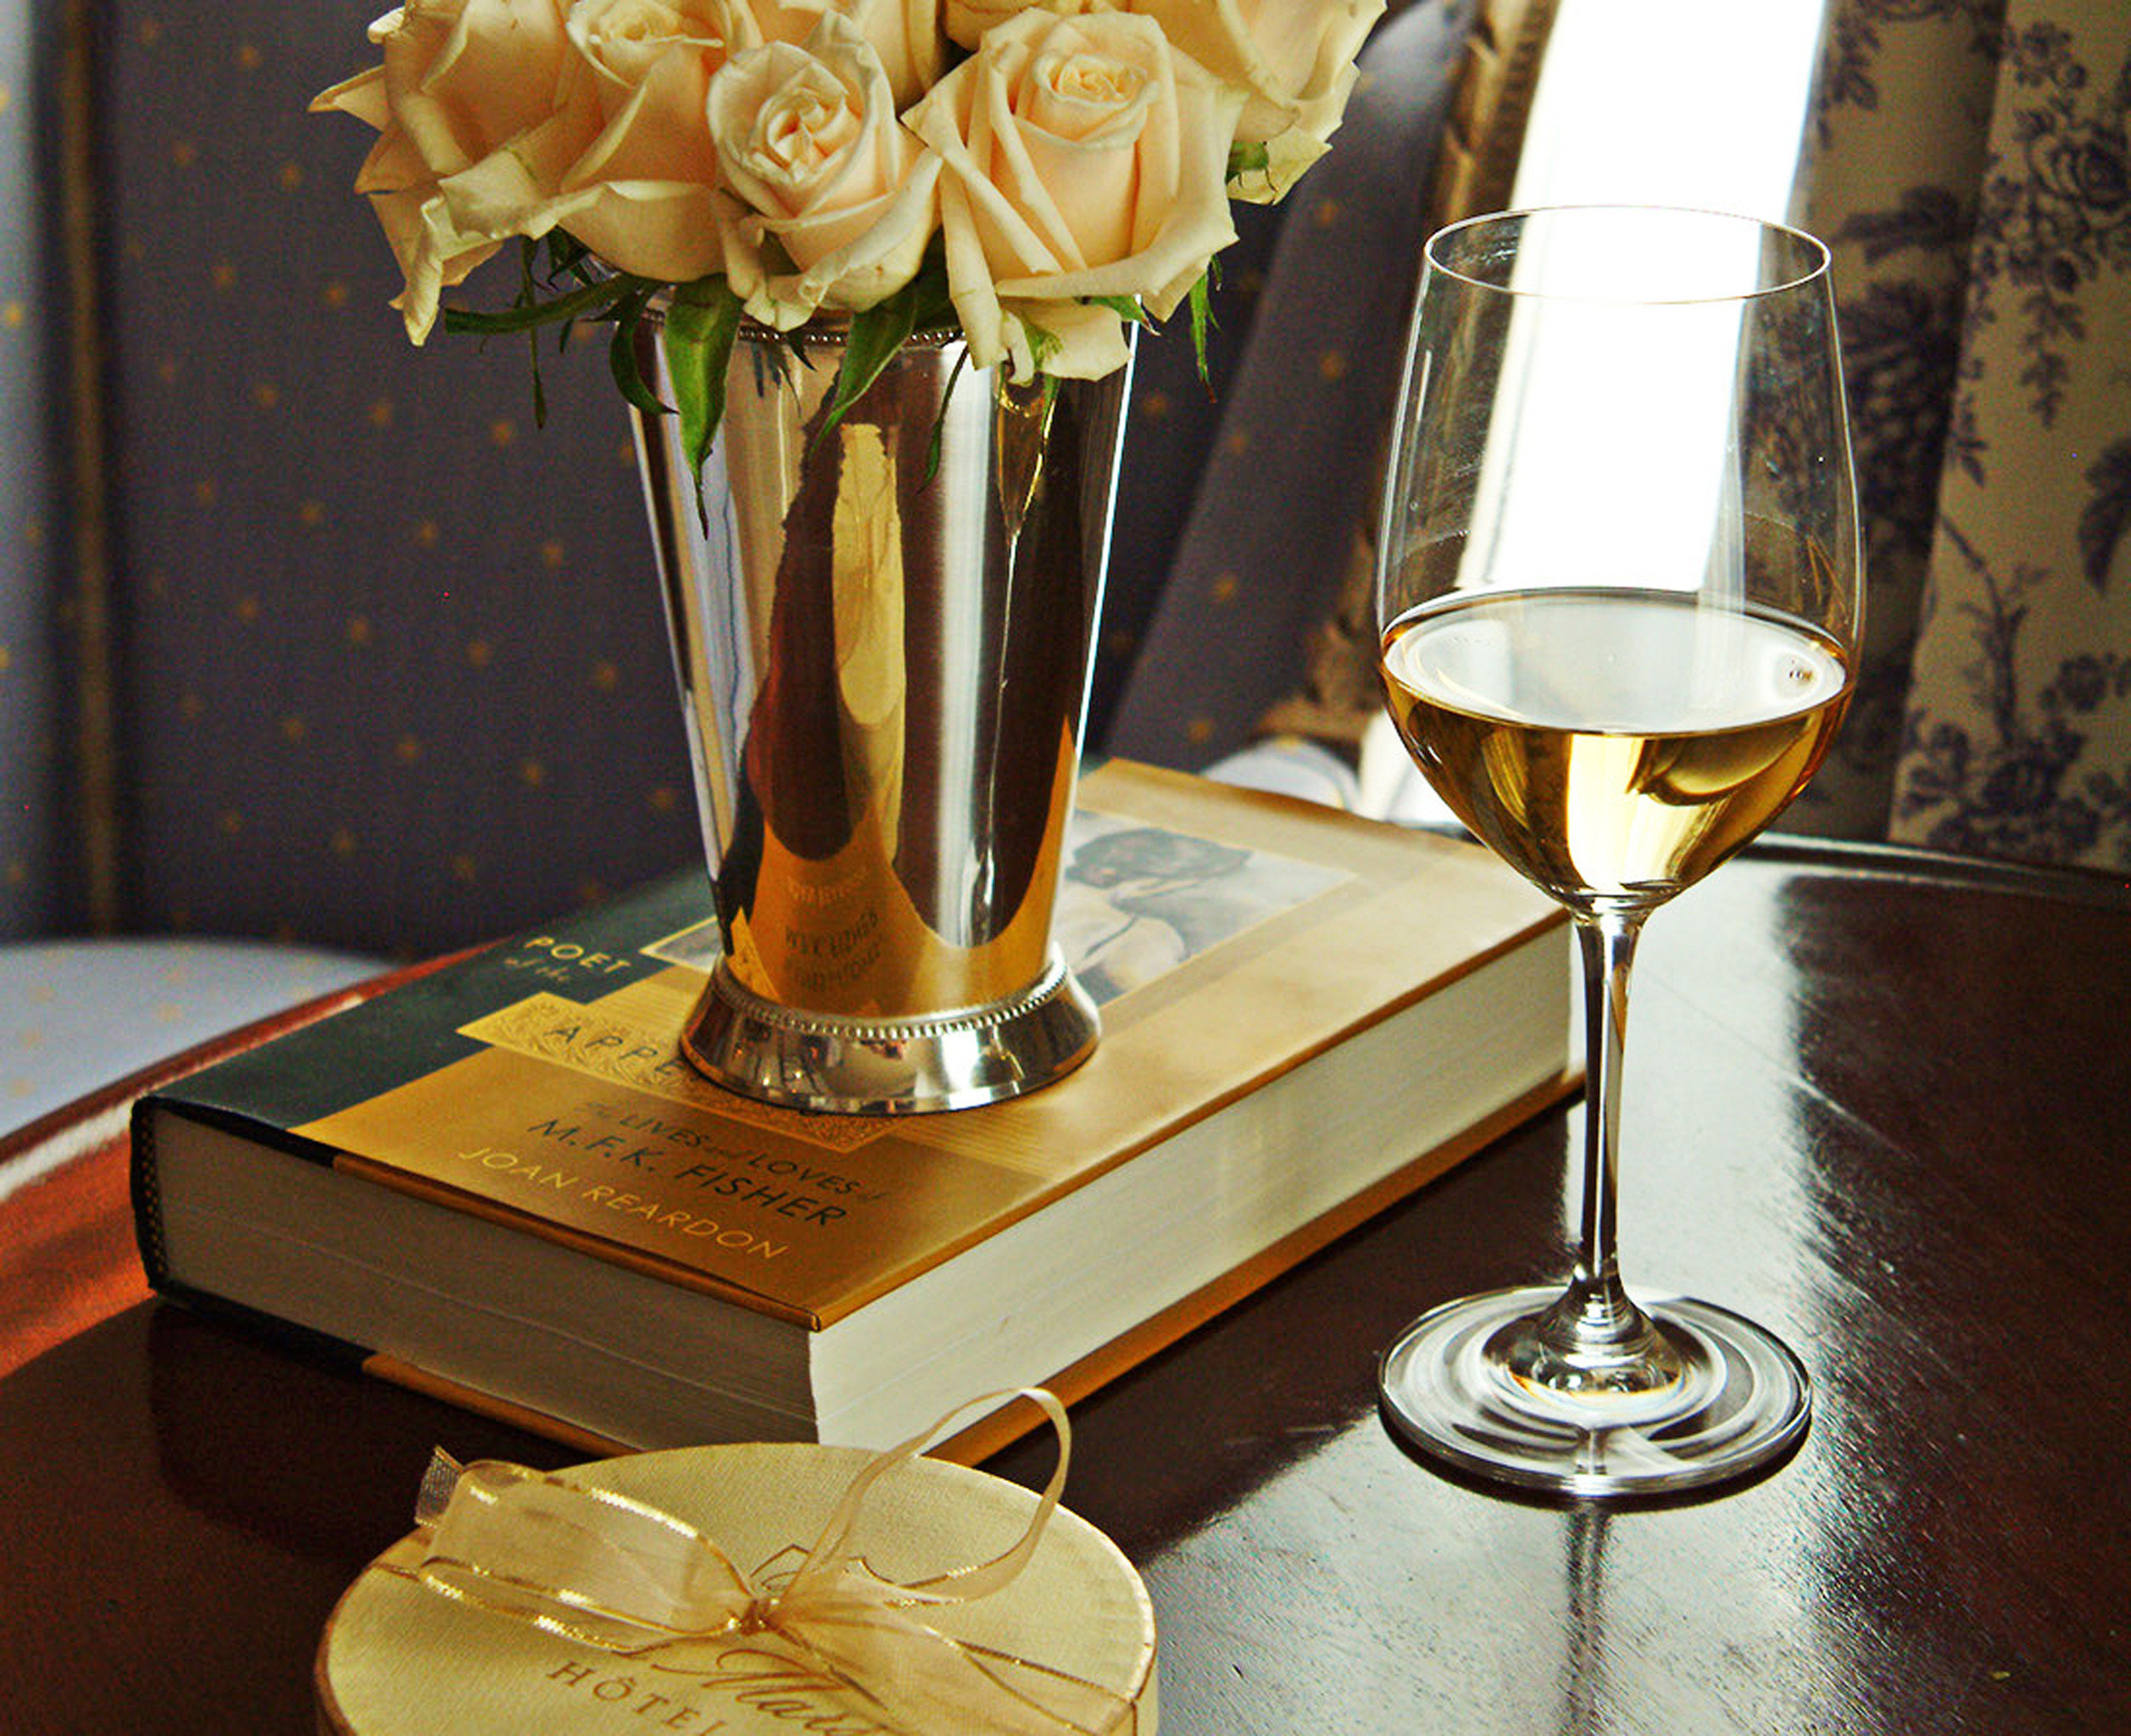 Boutique Drink Elegant Historic Romance Romantic Wine-Tasting yellow centrepiece trophy flower lighting glass drinkware candle champagne vase